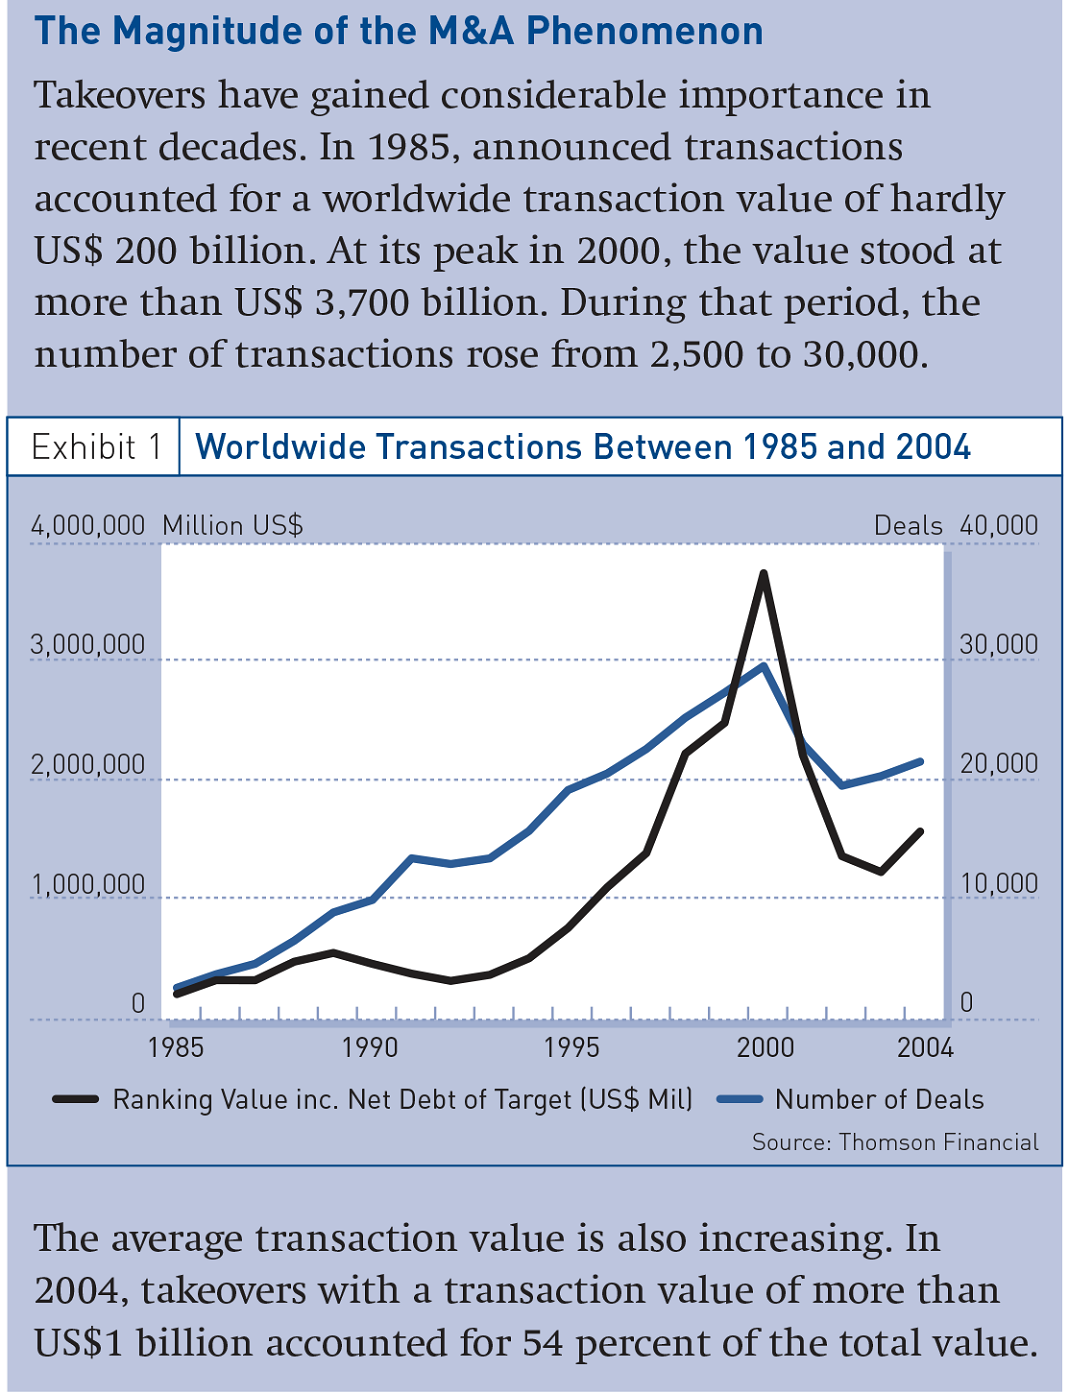 Worldwide Transactions Between 1985 and 2004